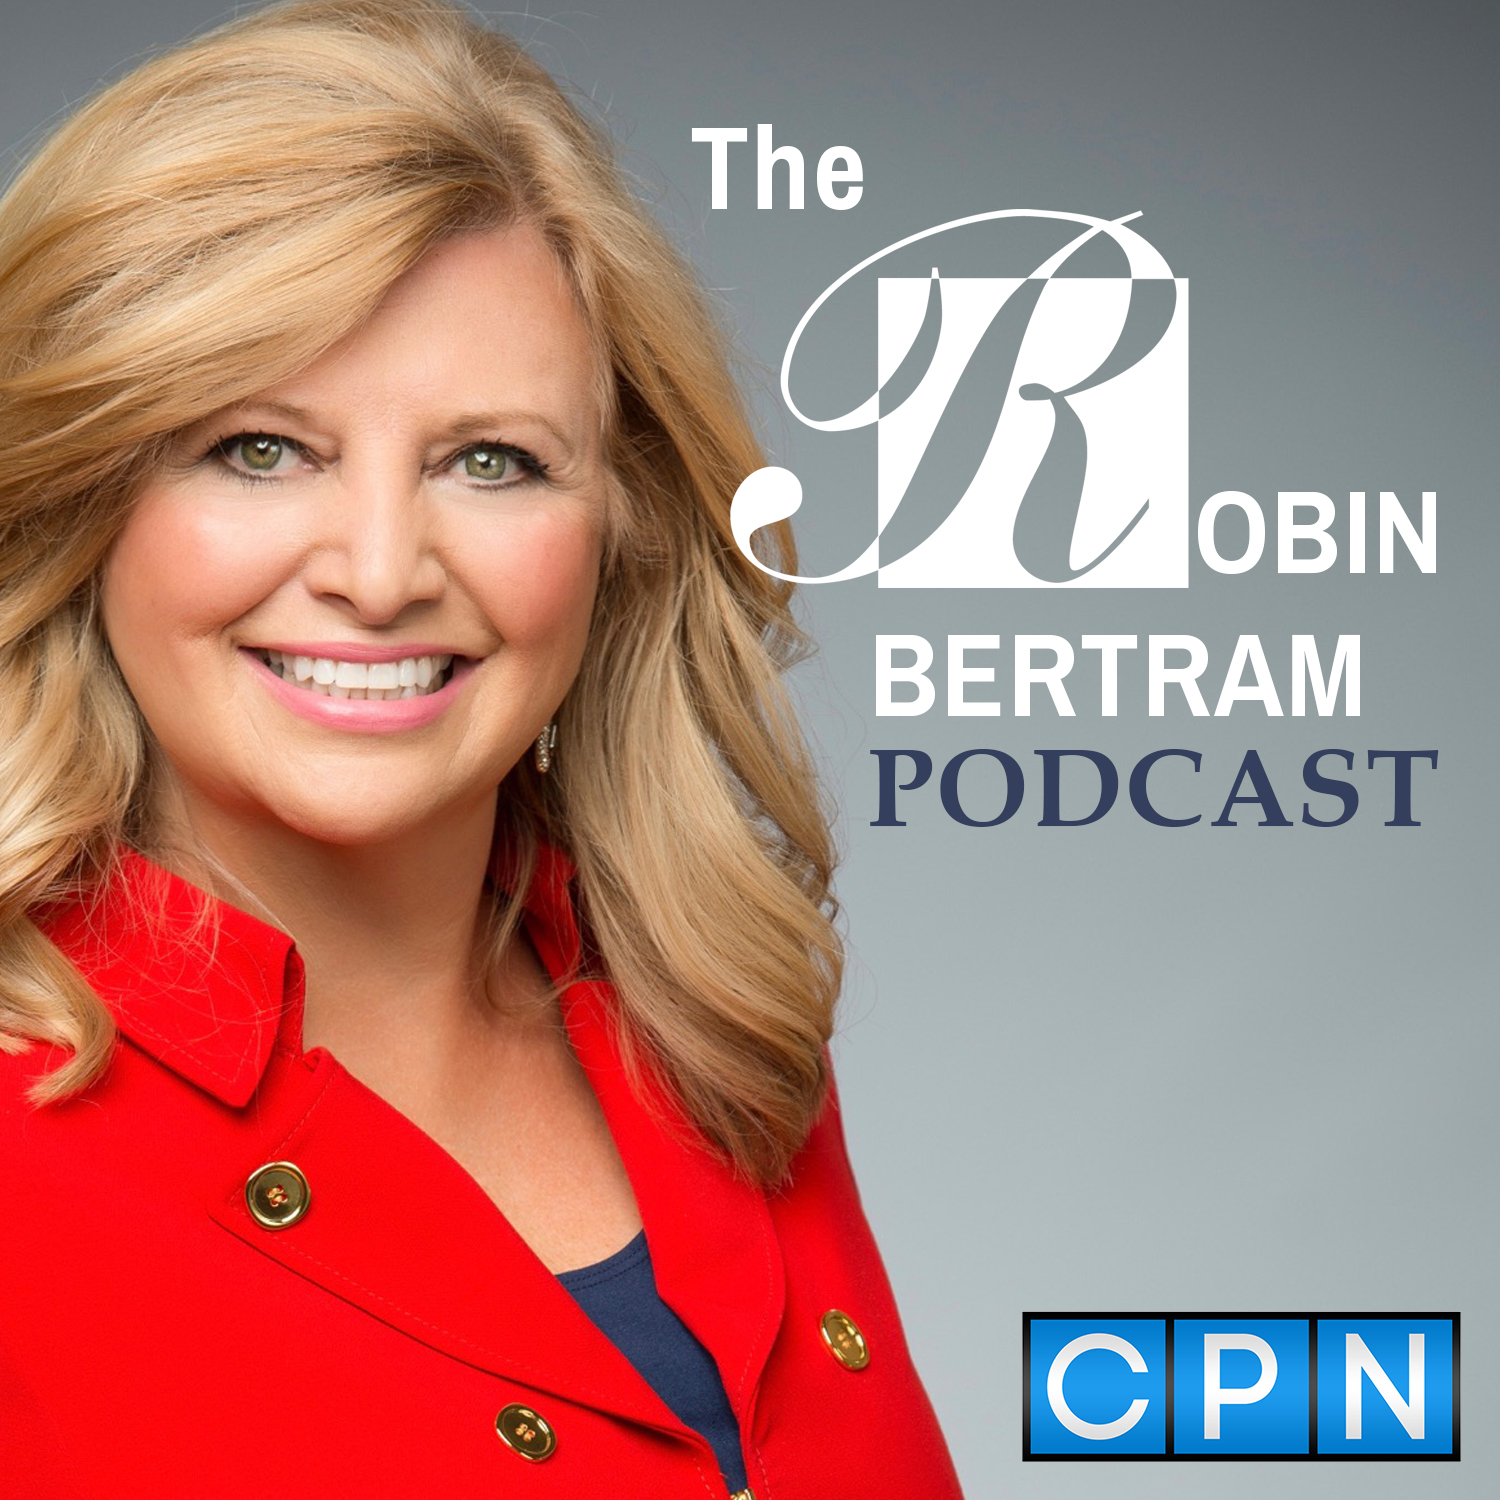 The Robin Bertram Podcast